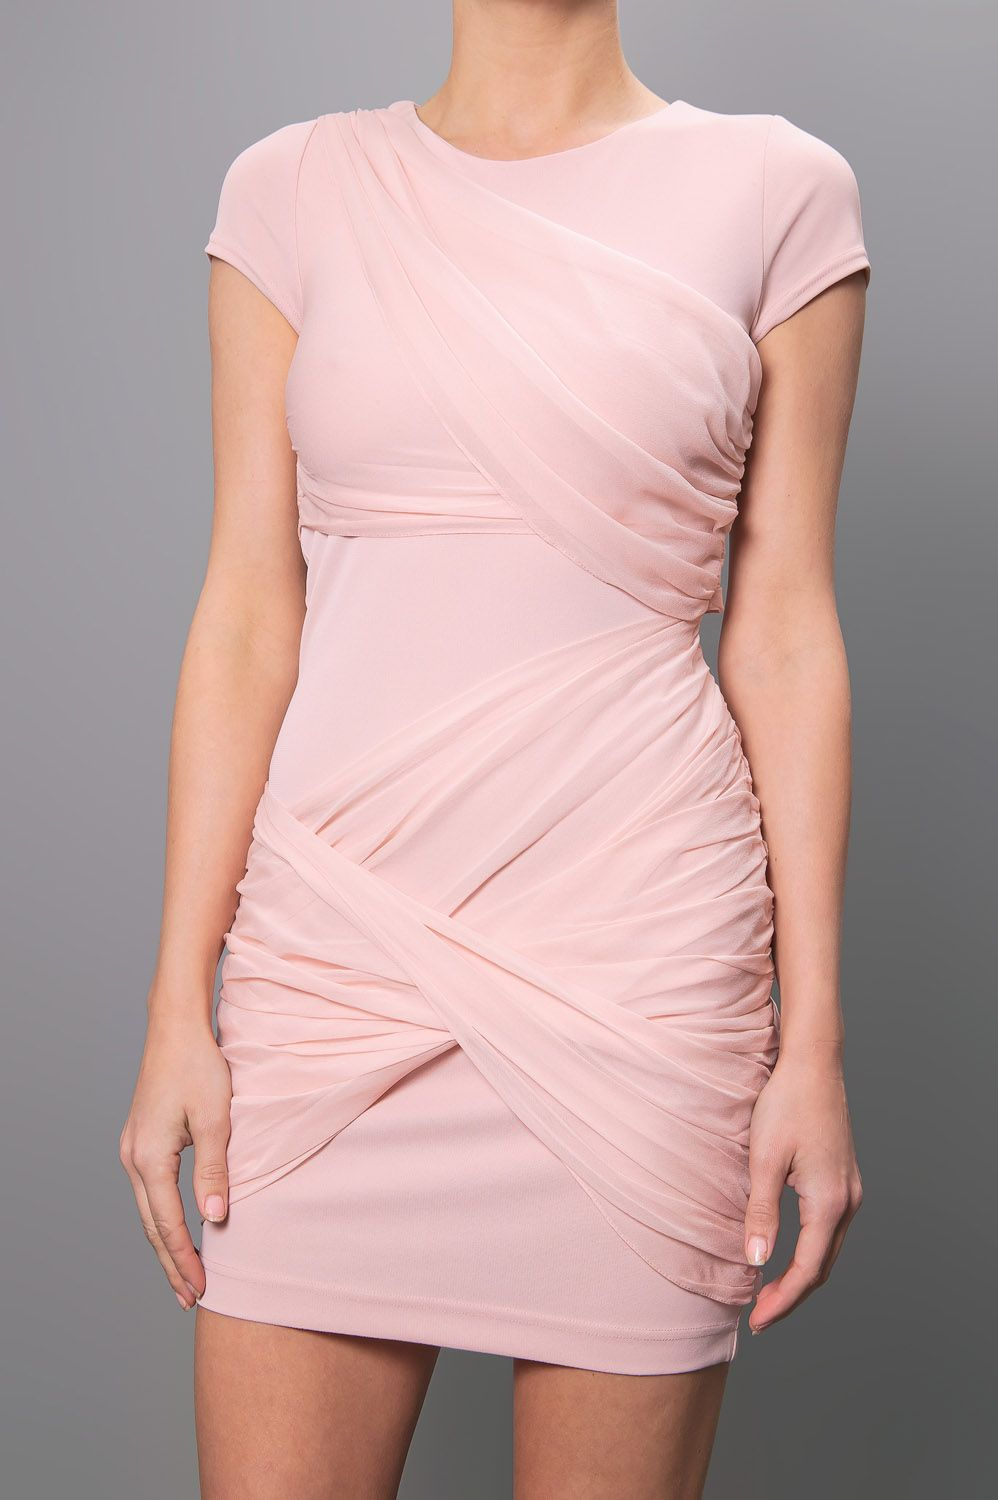 Alice and Olivia. I want this dress! Perfect for a date night ...